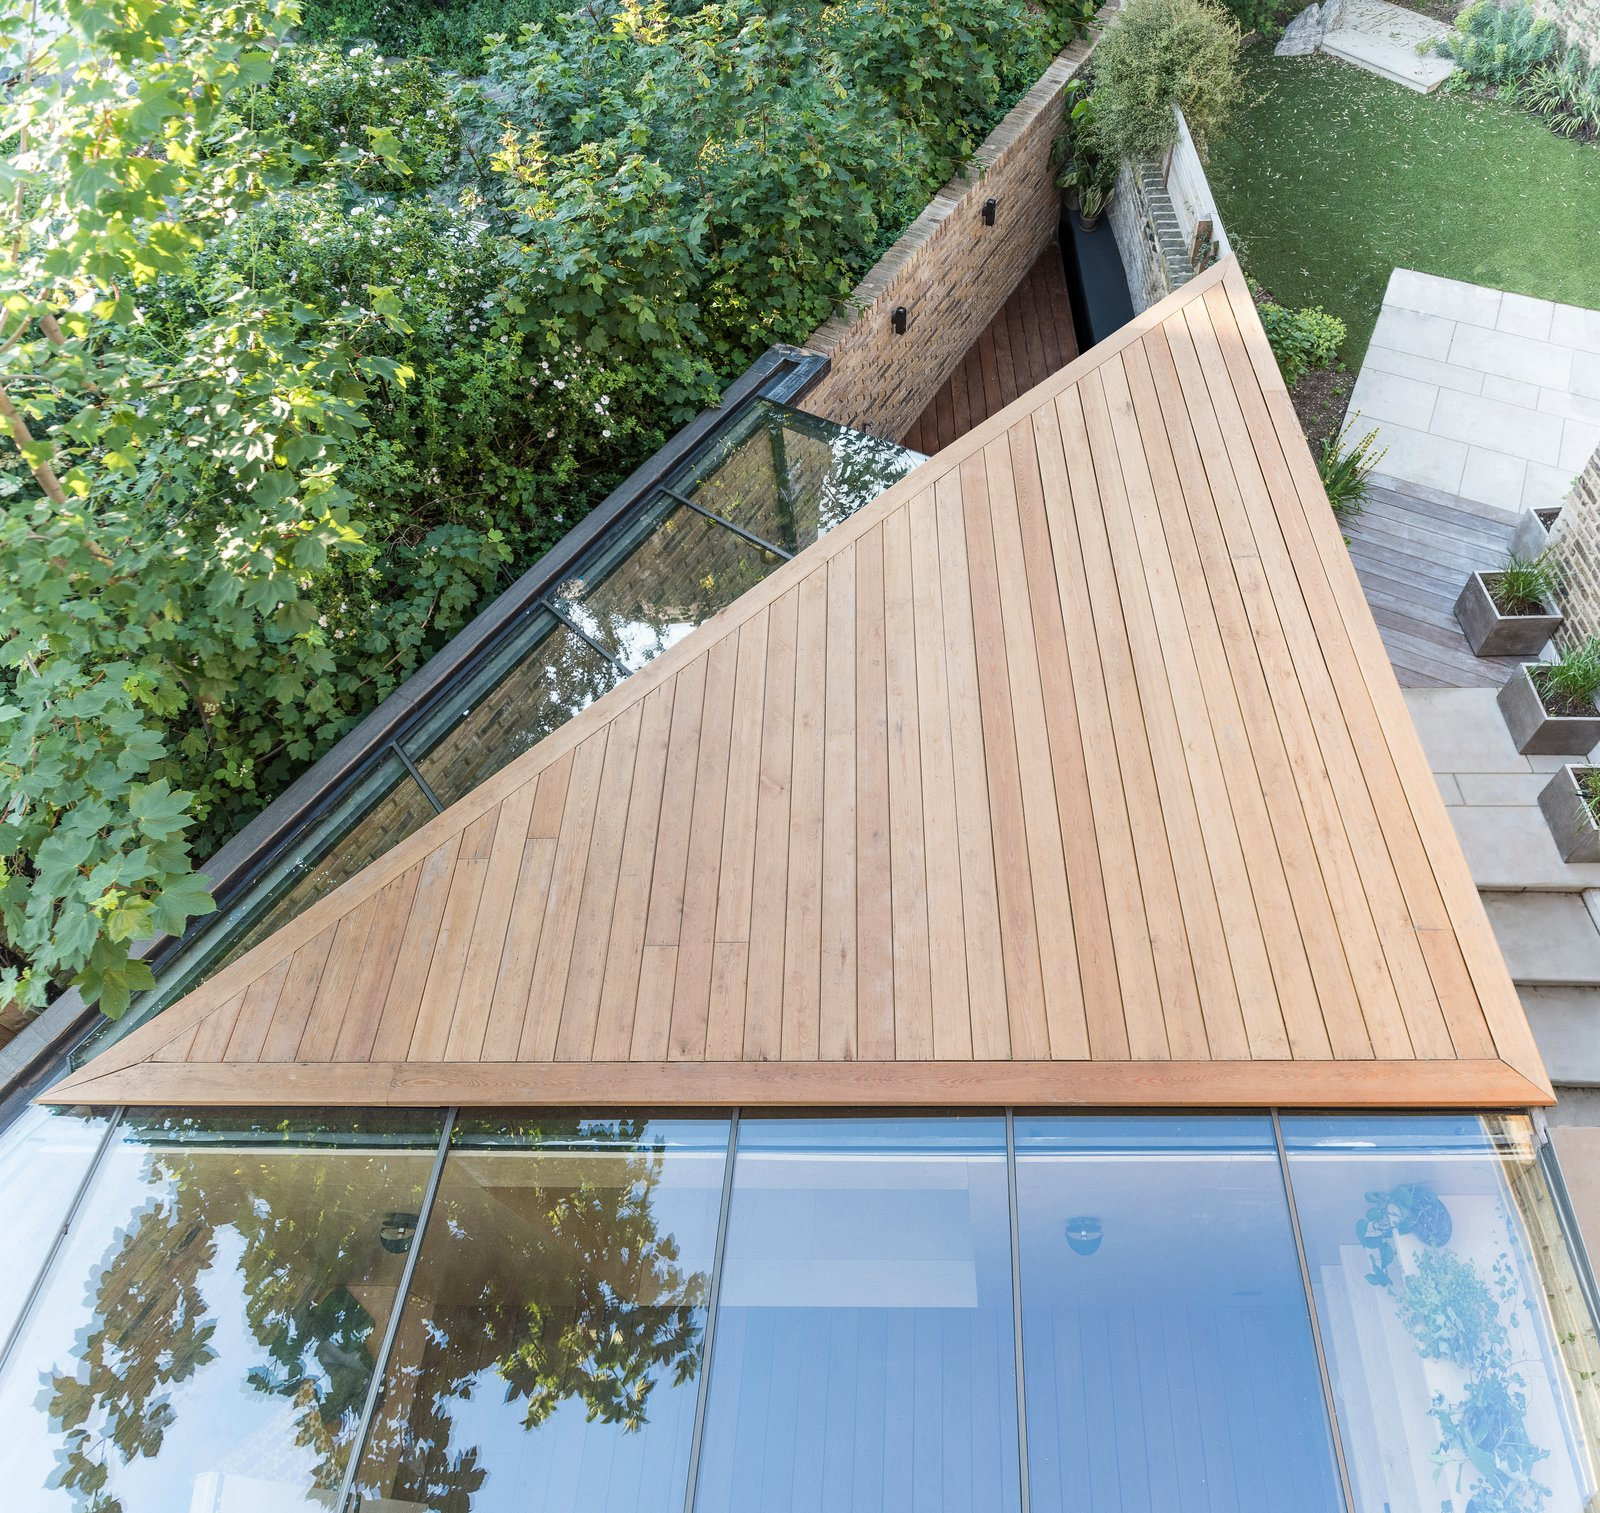 Outdoor, Decking, Back Yard, Small, Wood, Rooftop, and Garden An overhead view of the extension.  Outdoor Rooftop Small Photos from A Crafty Triangular Addition Carves Out Office Space in a London Backyard